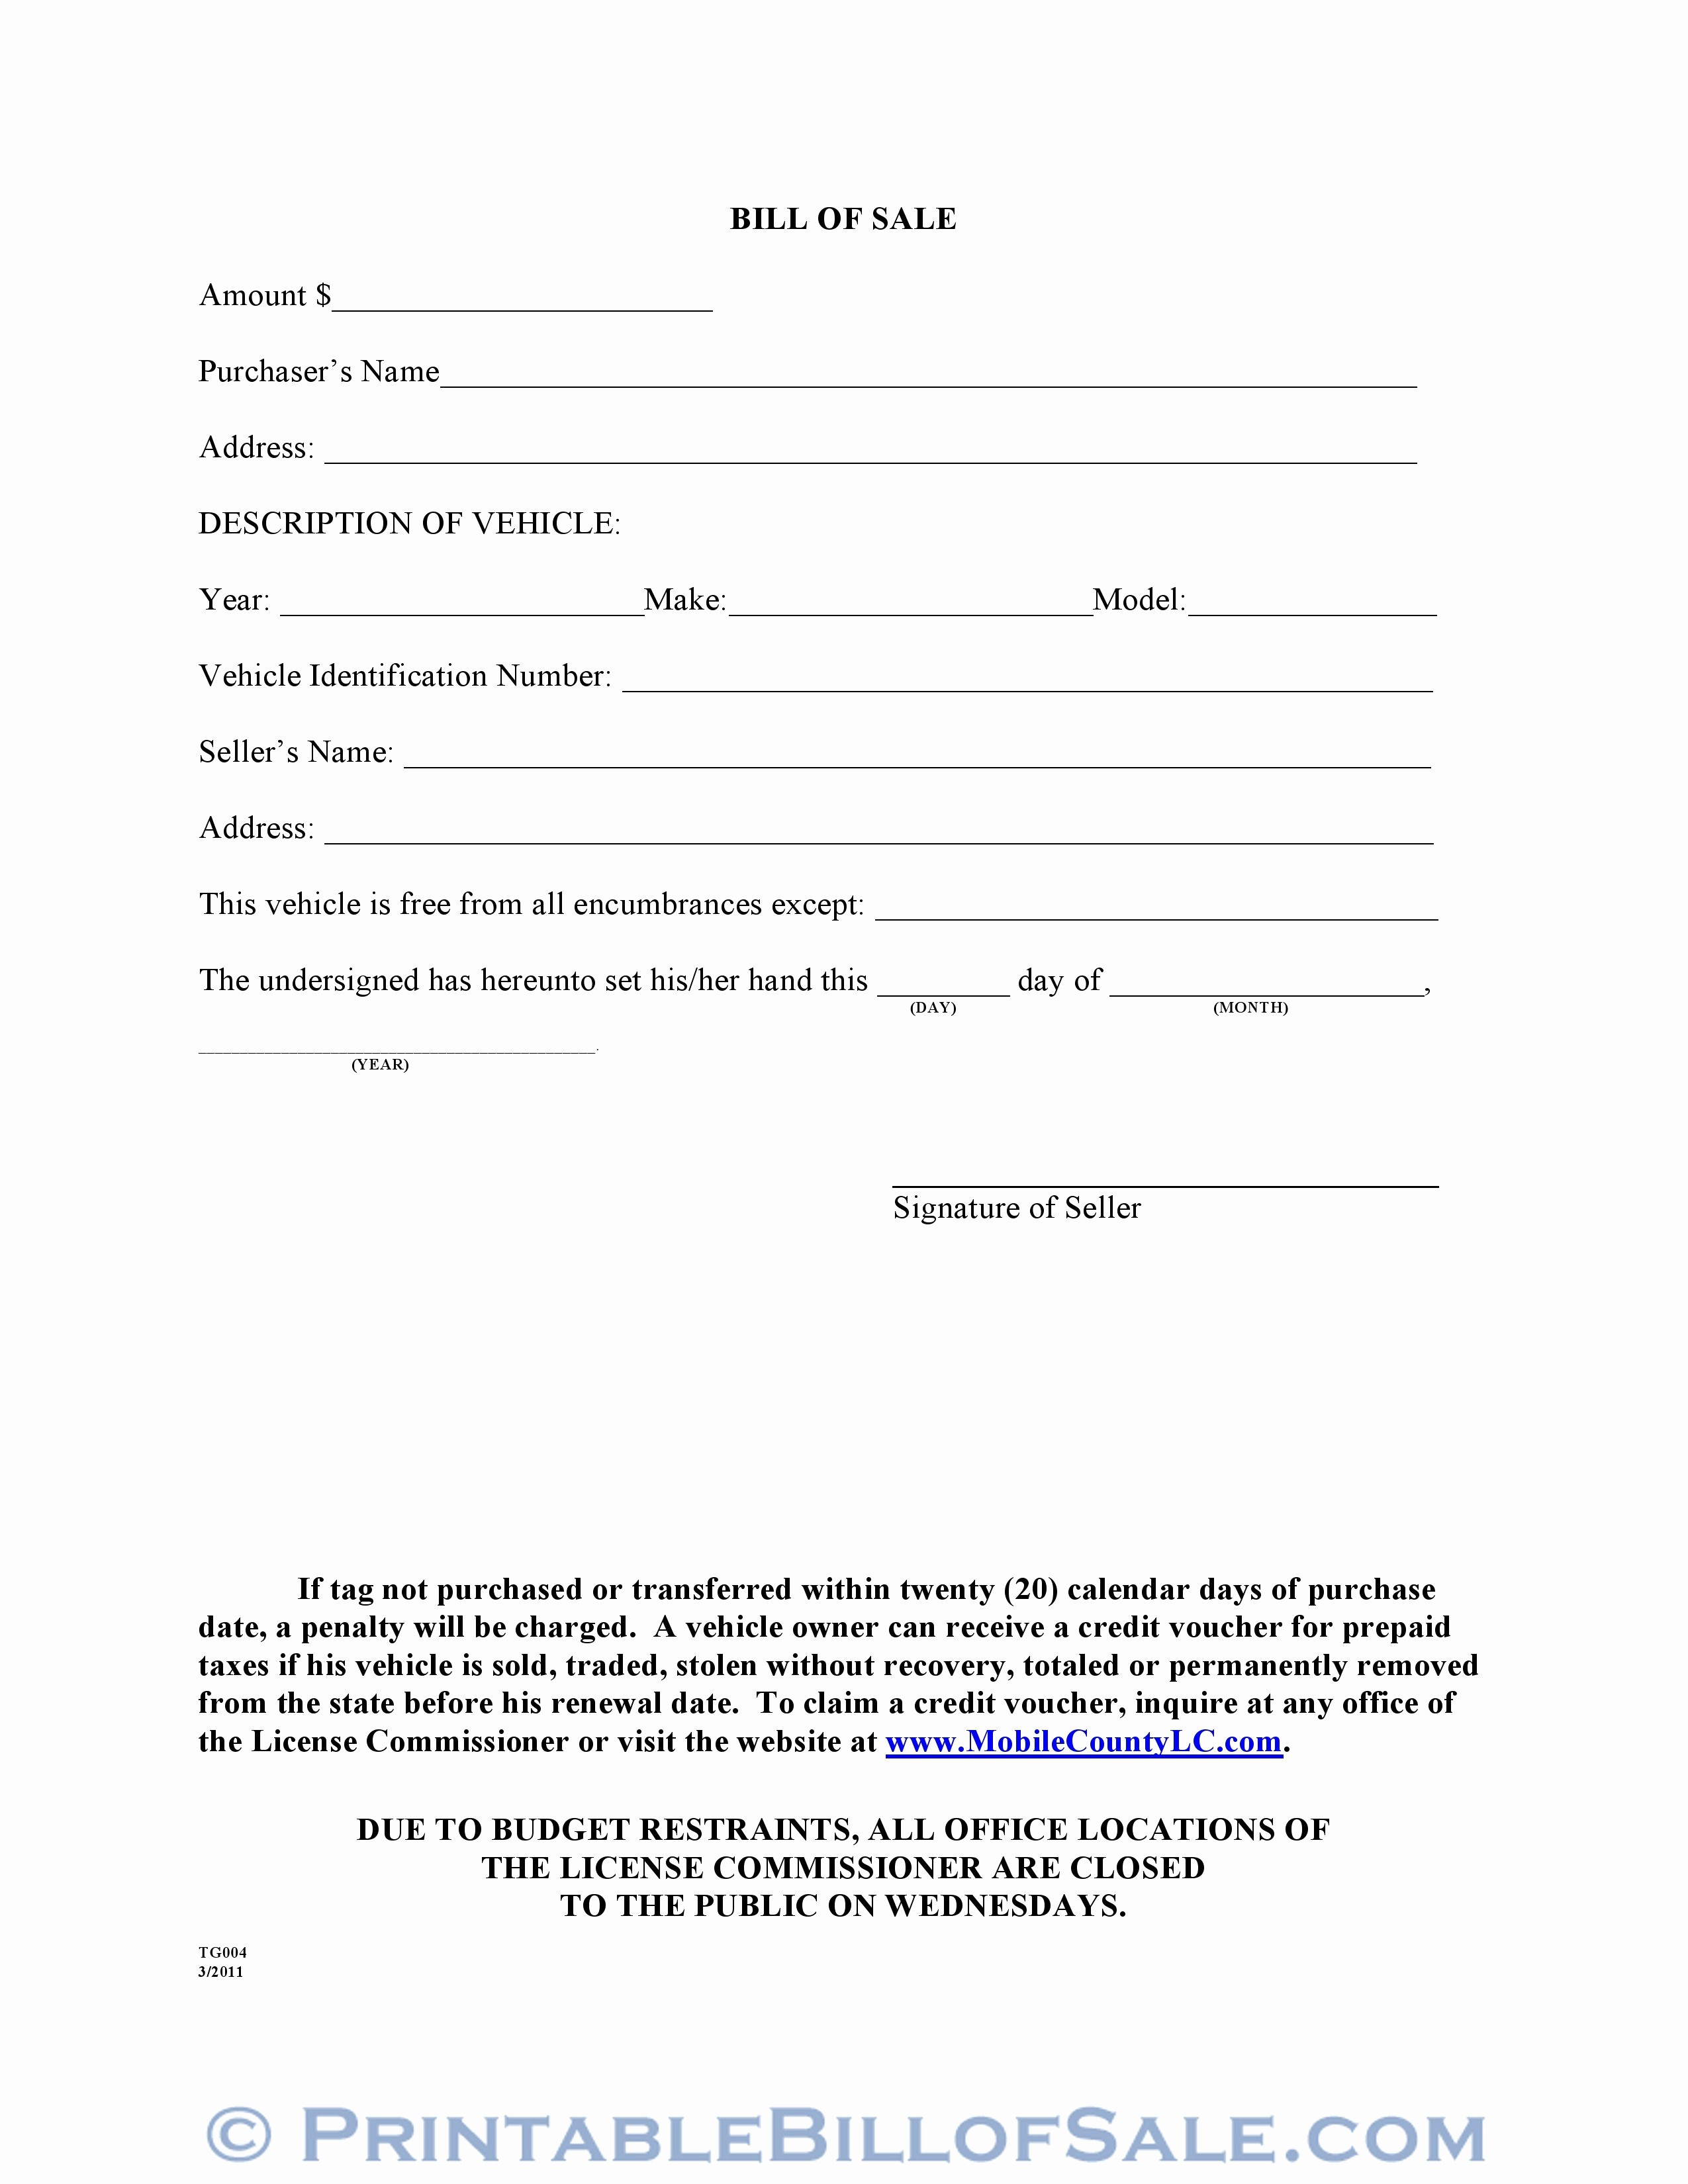 Simple Bill Of Sale Auto Beautiful Free Mobile County Alabama Motor Vehicle Bill Of Sale form